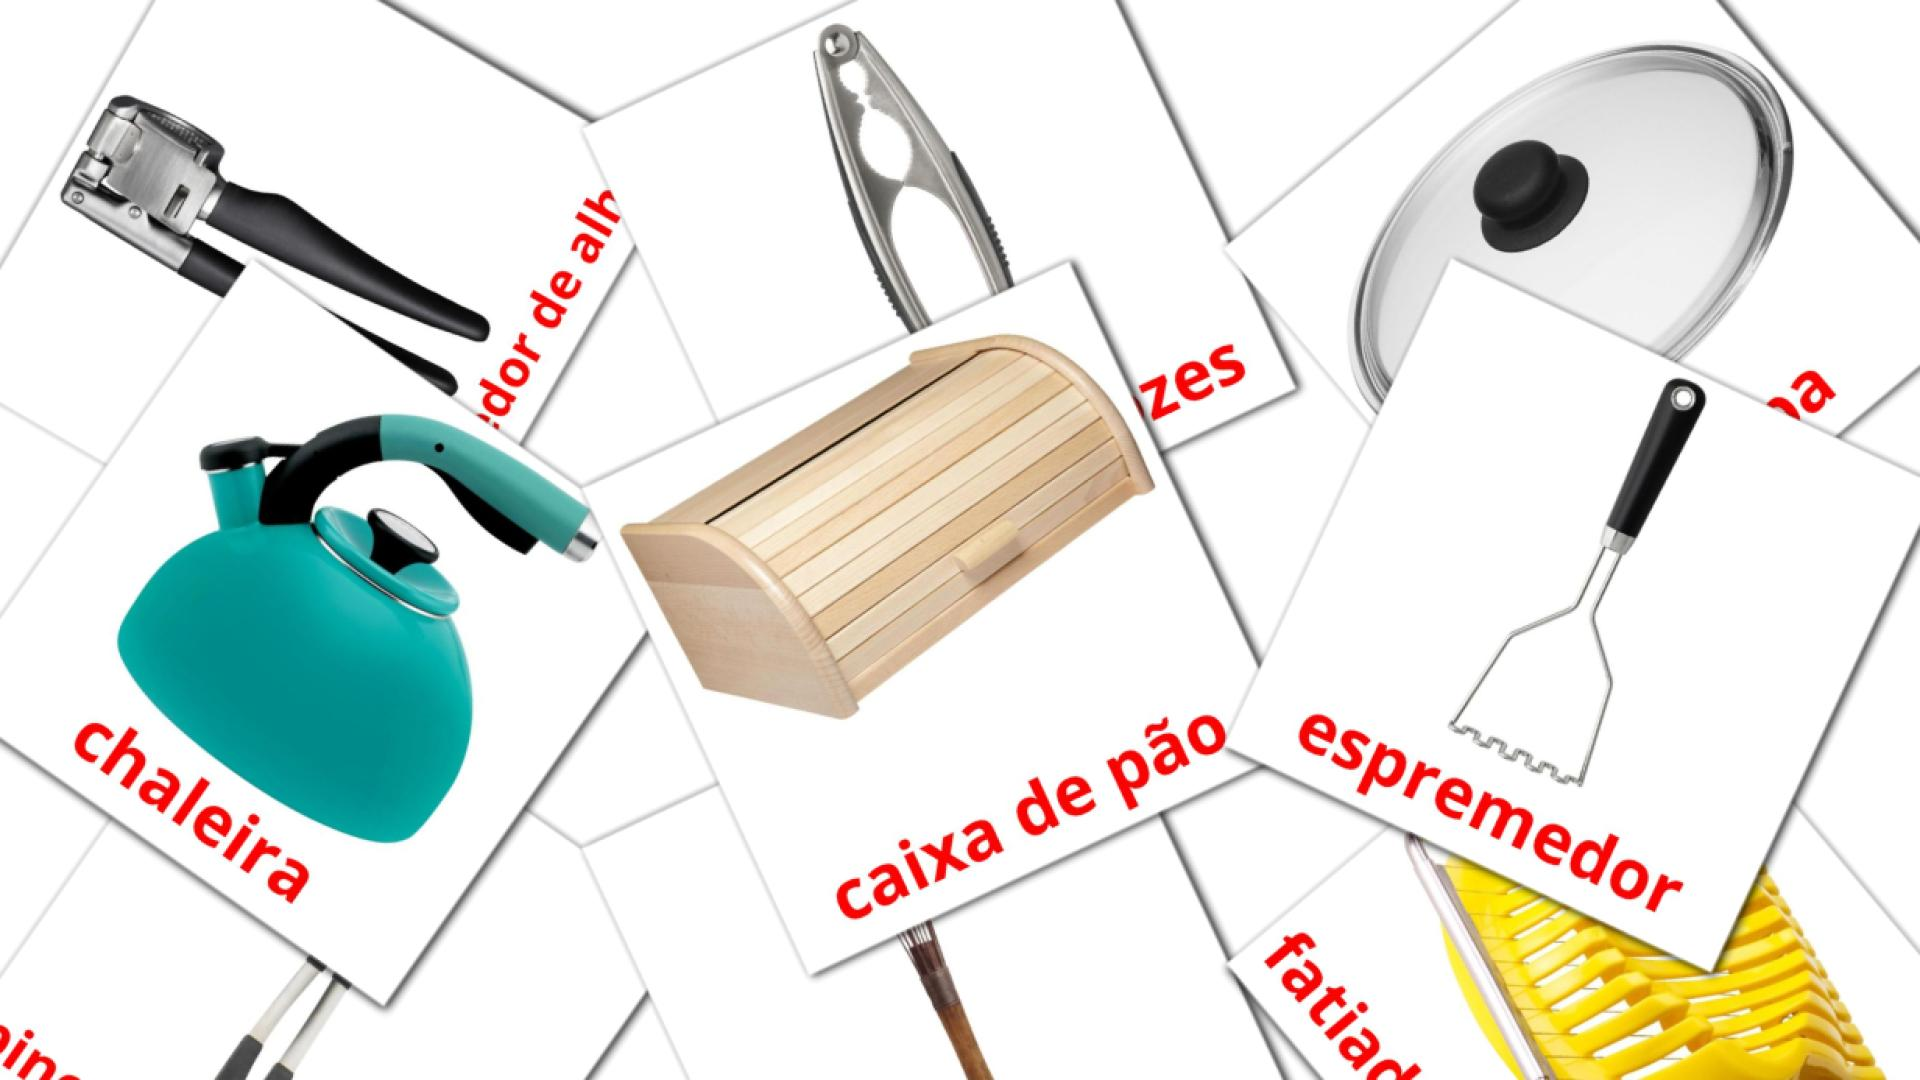 Kitchenware flashcards